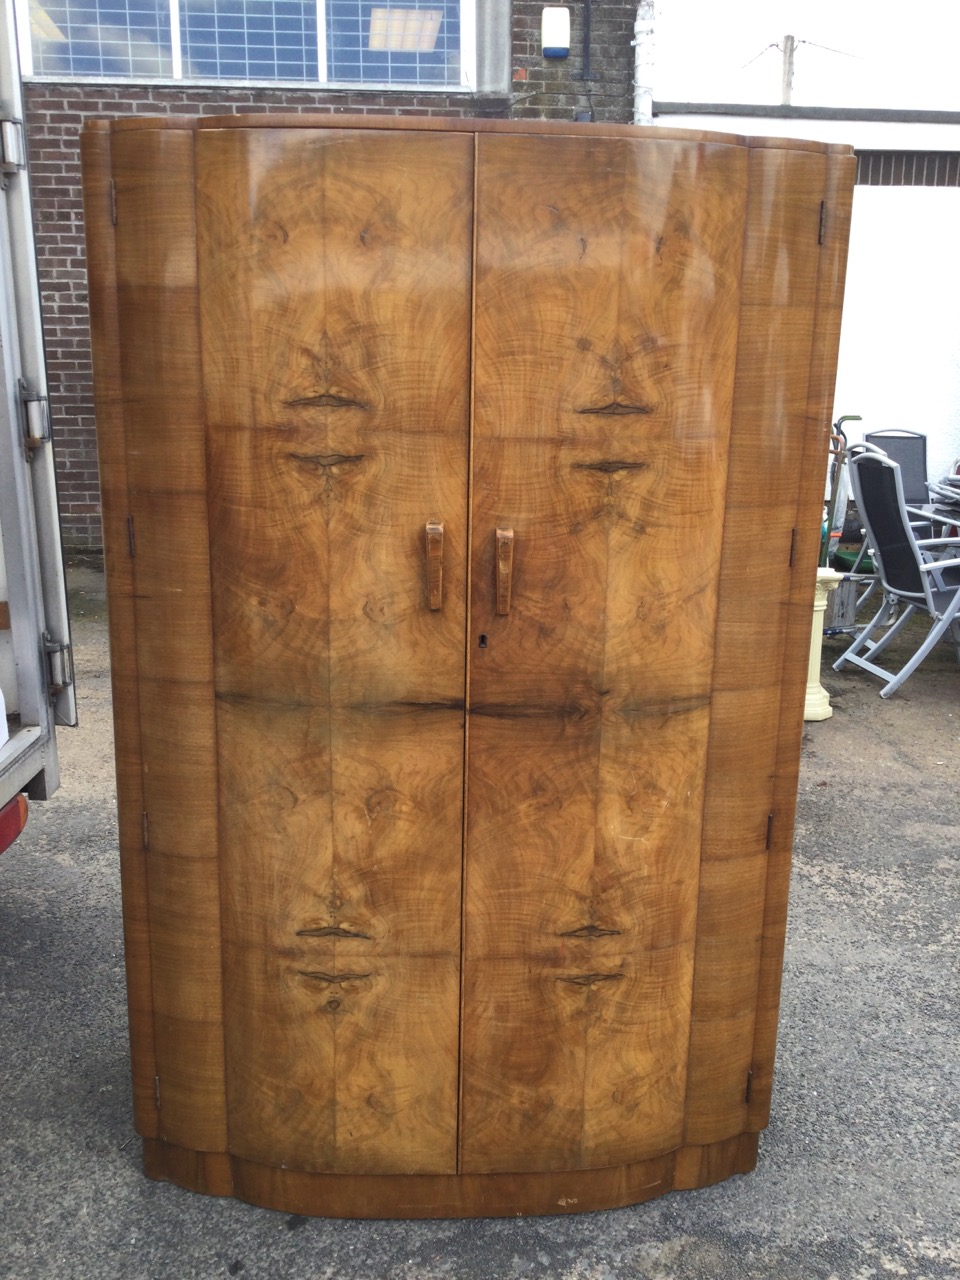 A deco walnut wardrobe of scalloped bowfronted outline having two doors enclosing an interior with - Image 2 of 3